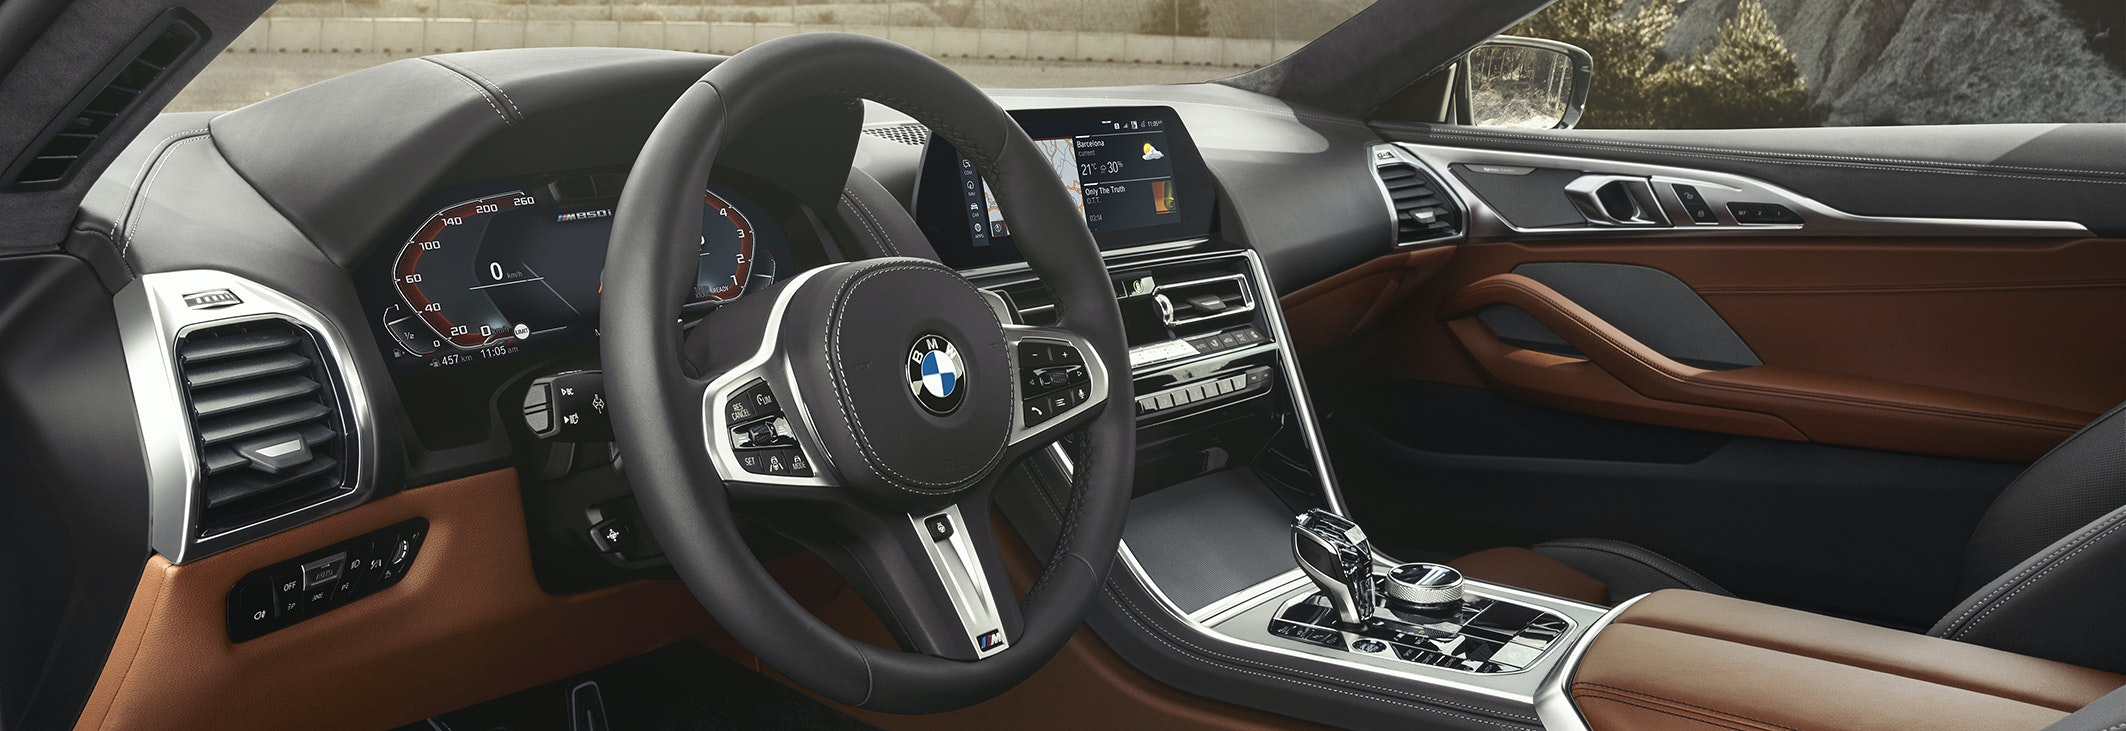 2018 Bmw 8 Series Price Specs And Release Date Carwow